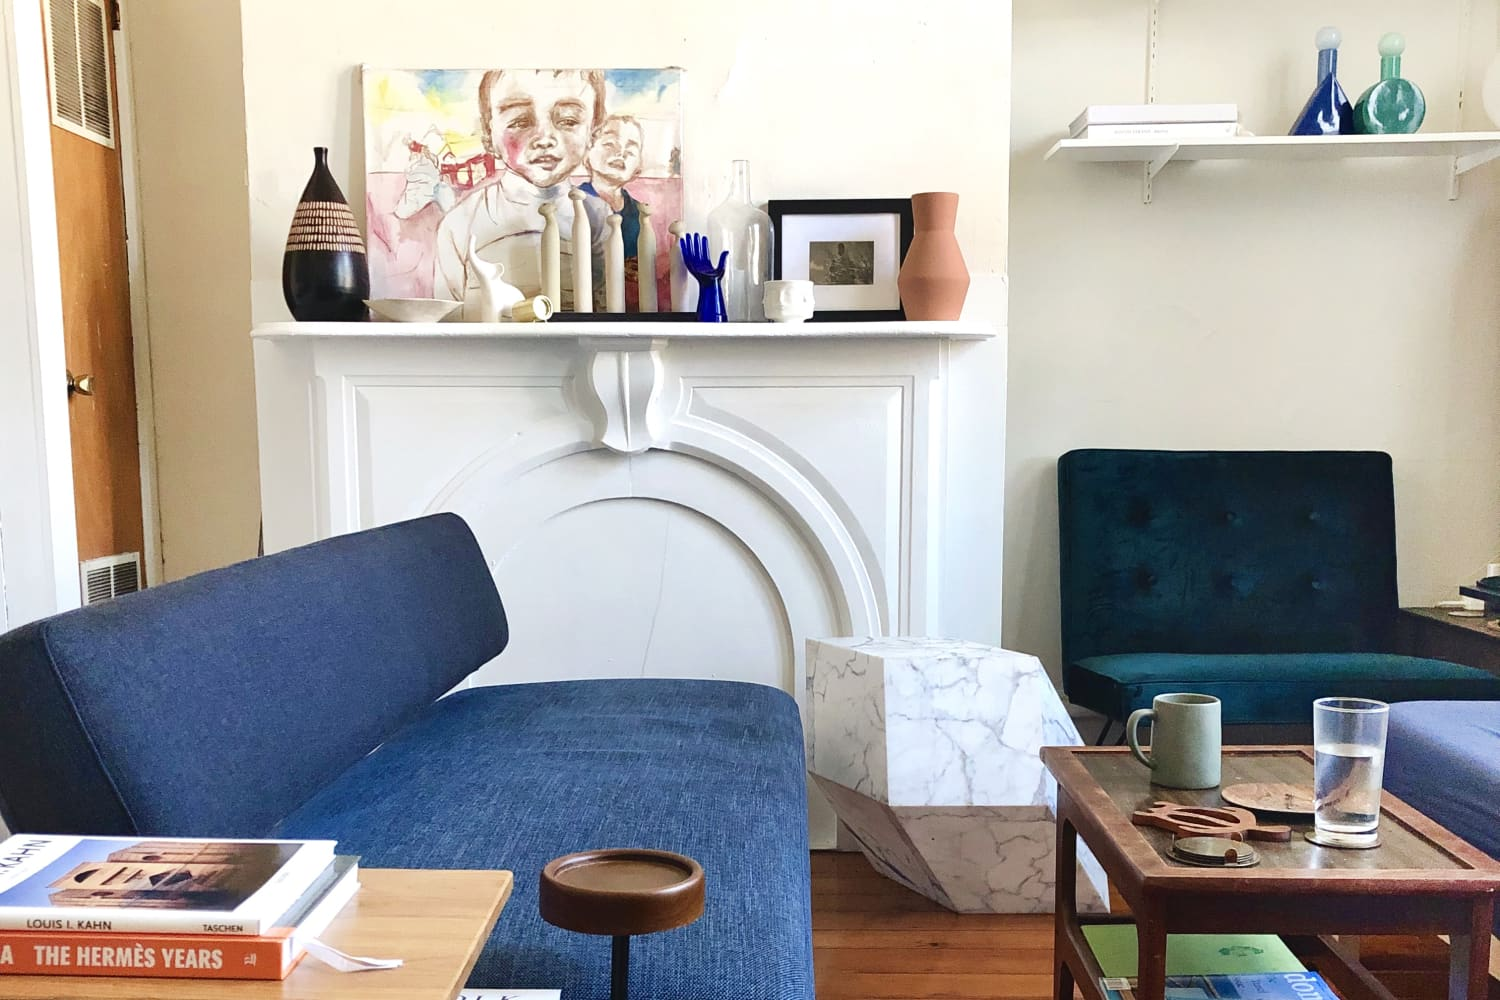 This Small Philadelphia Studio's Bed Is Located in an Unconventional Spot